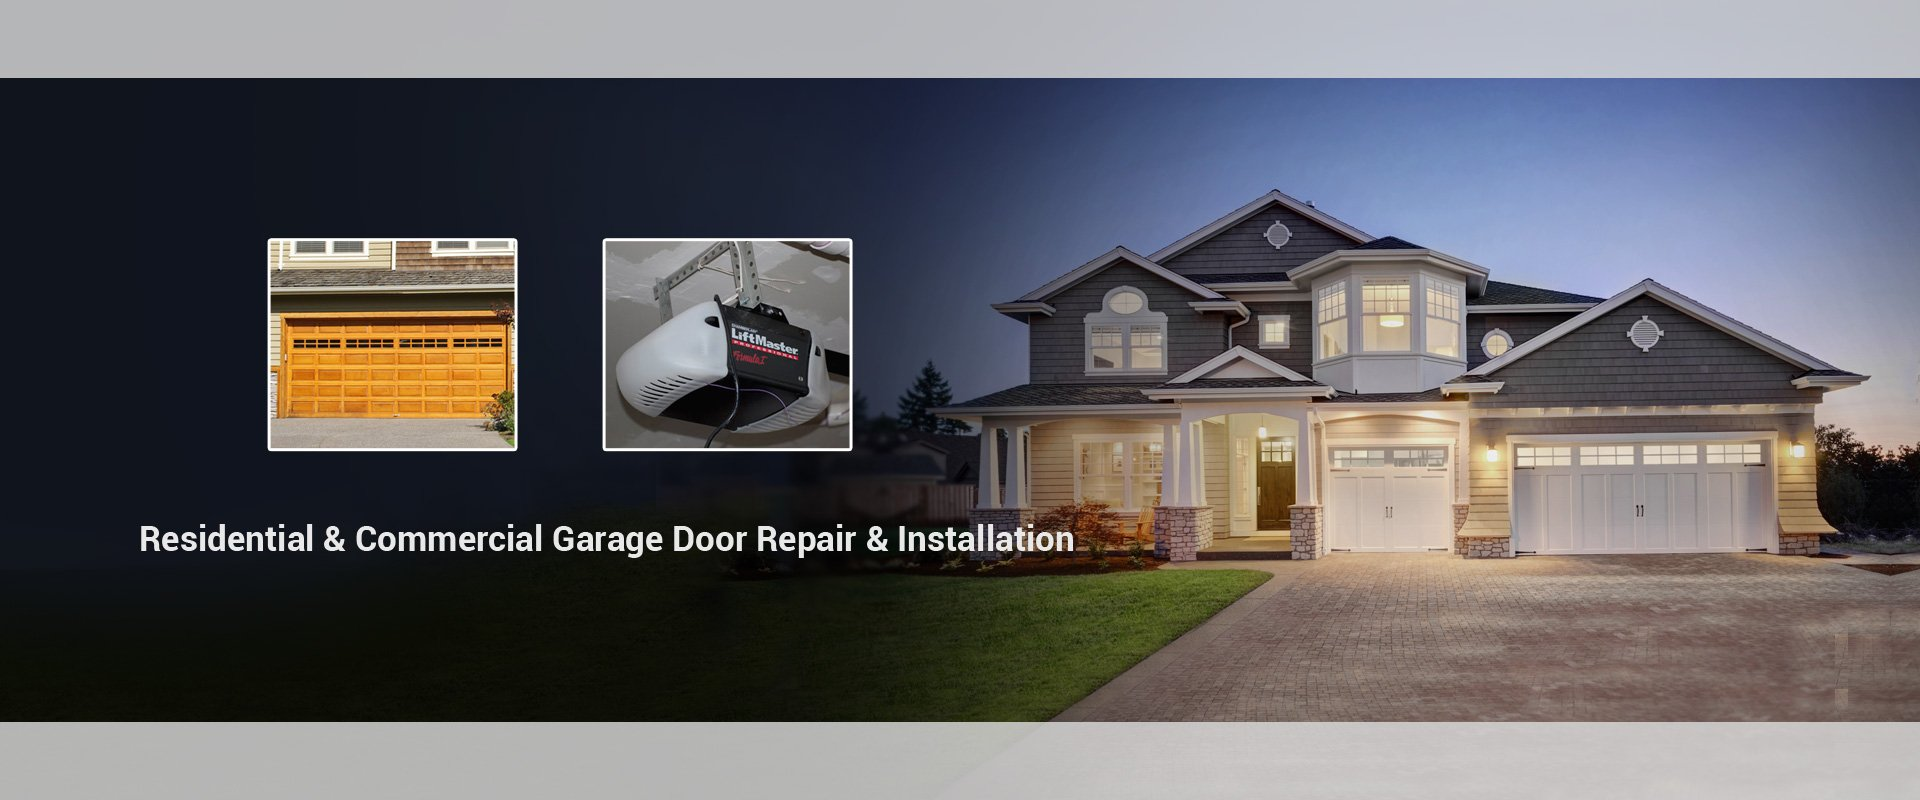 Garage Door Services Thousand Oaks CA